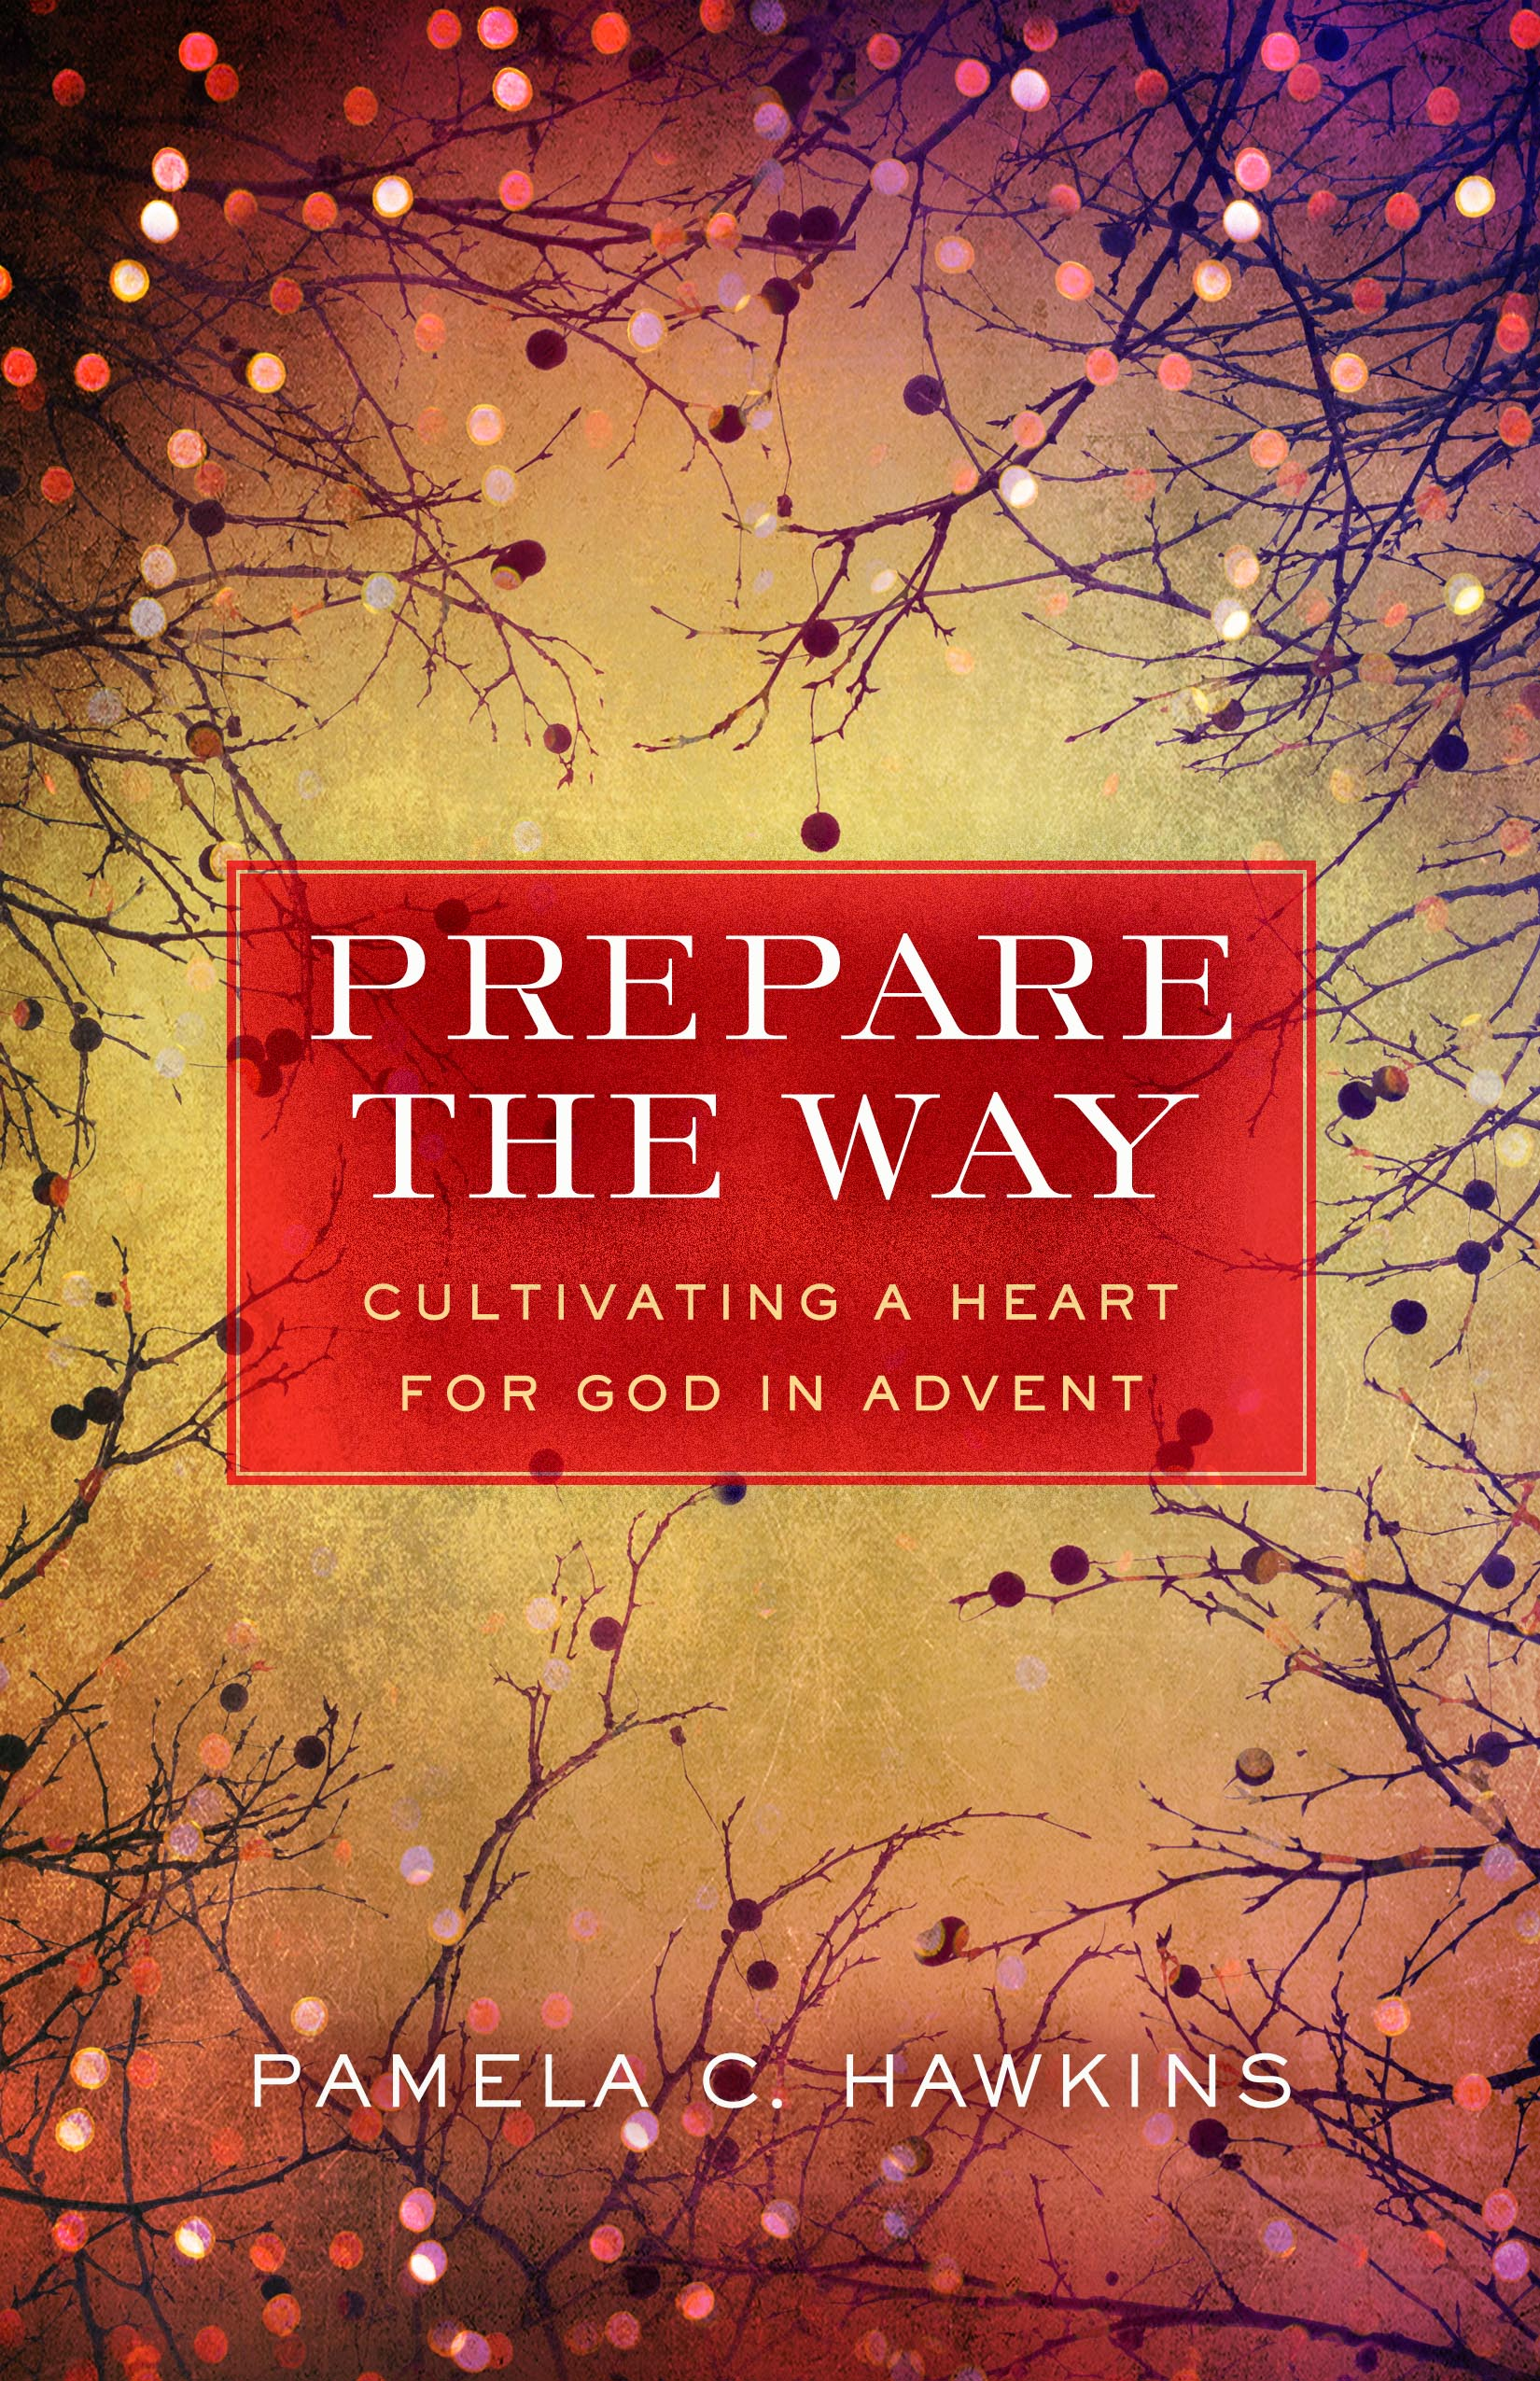 Prepare the Way - Pam Hawkins book cover